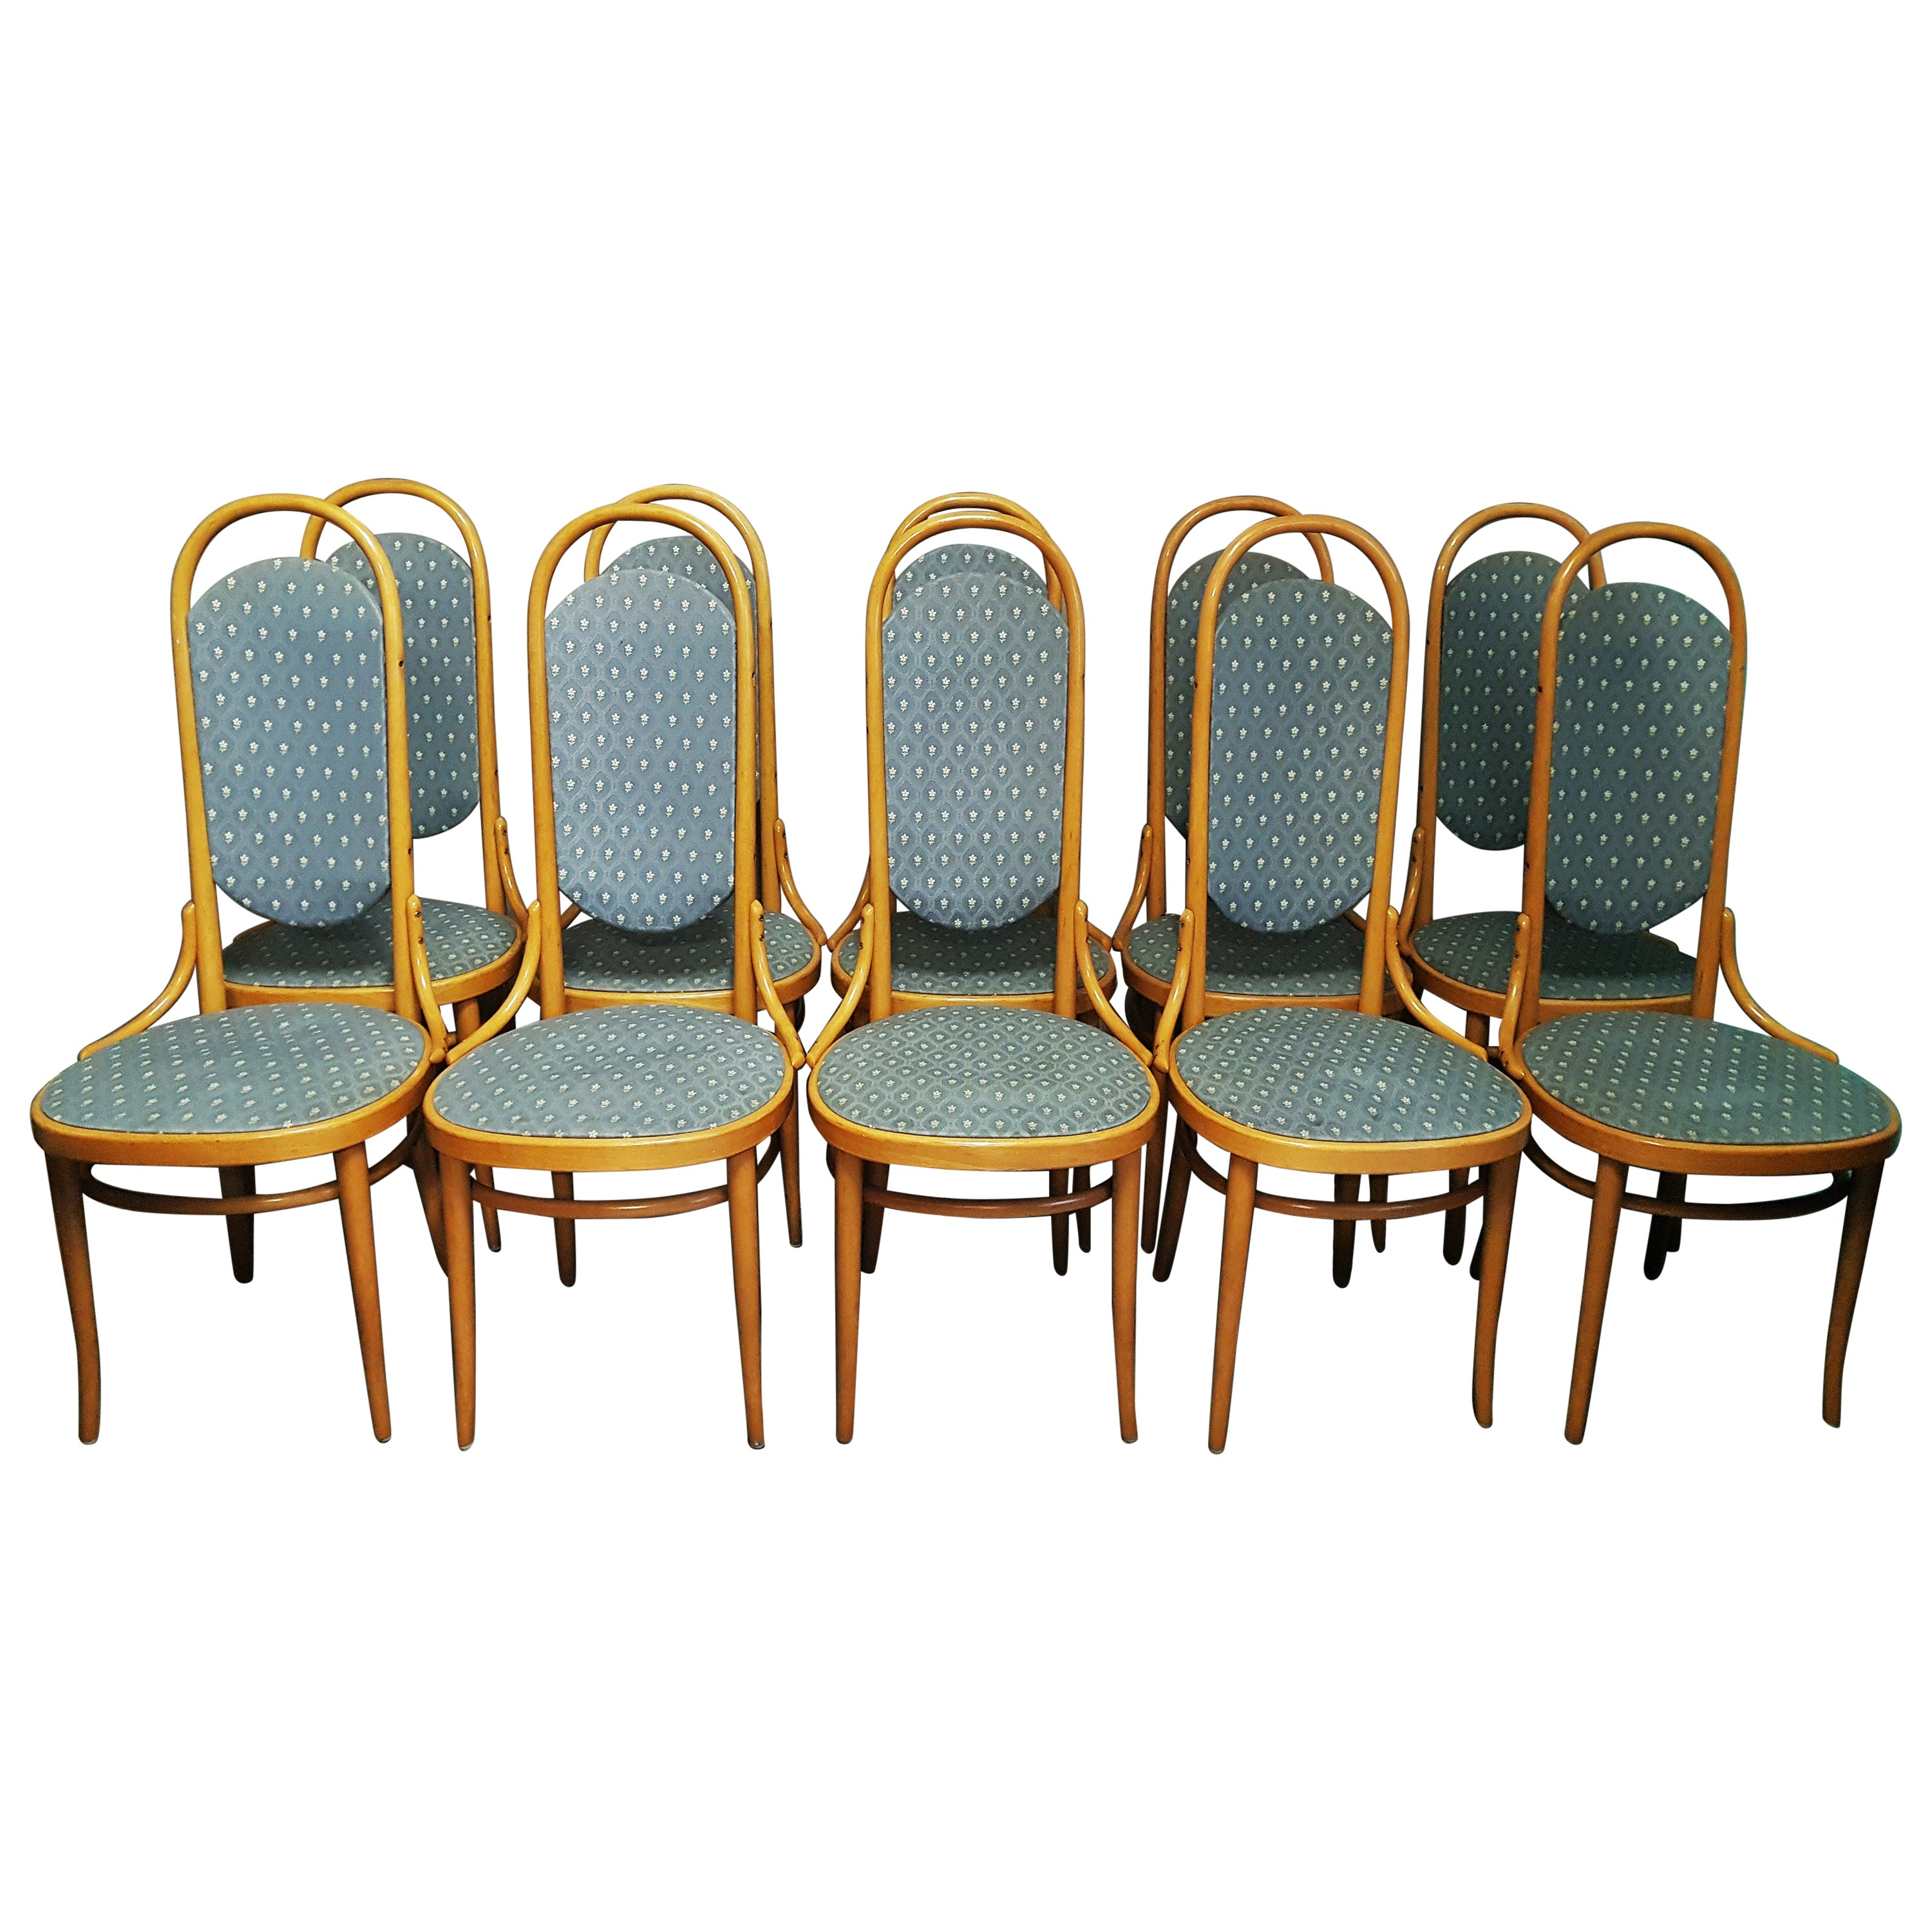 Midcentury Set of 10 Thonet High Back Bentwood Chairs